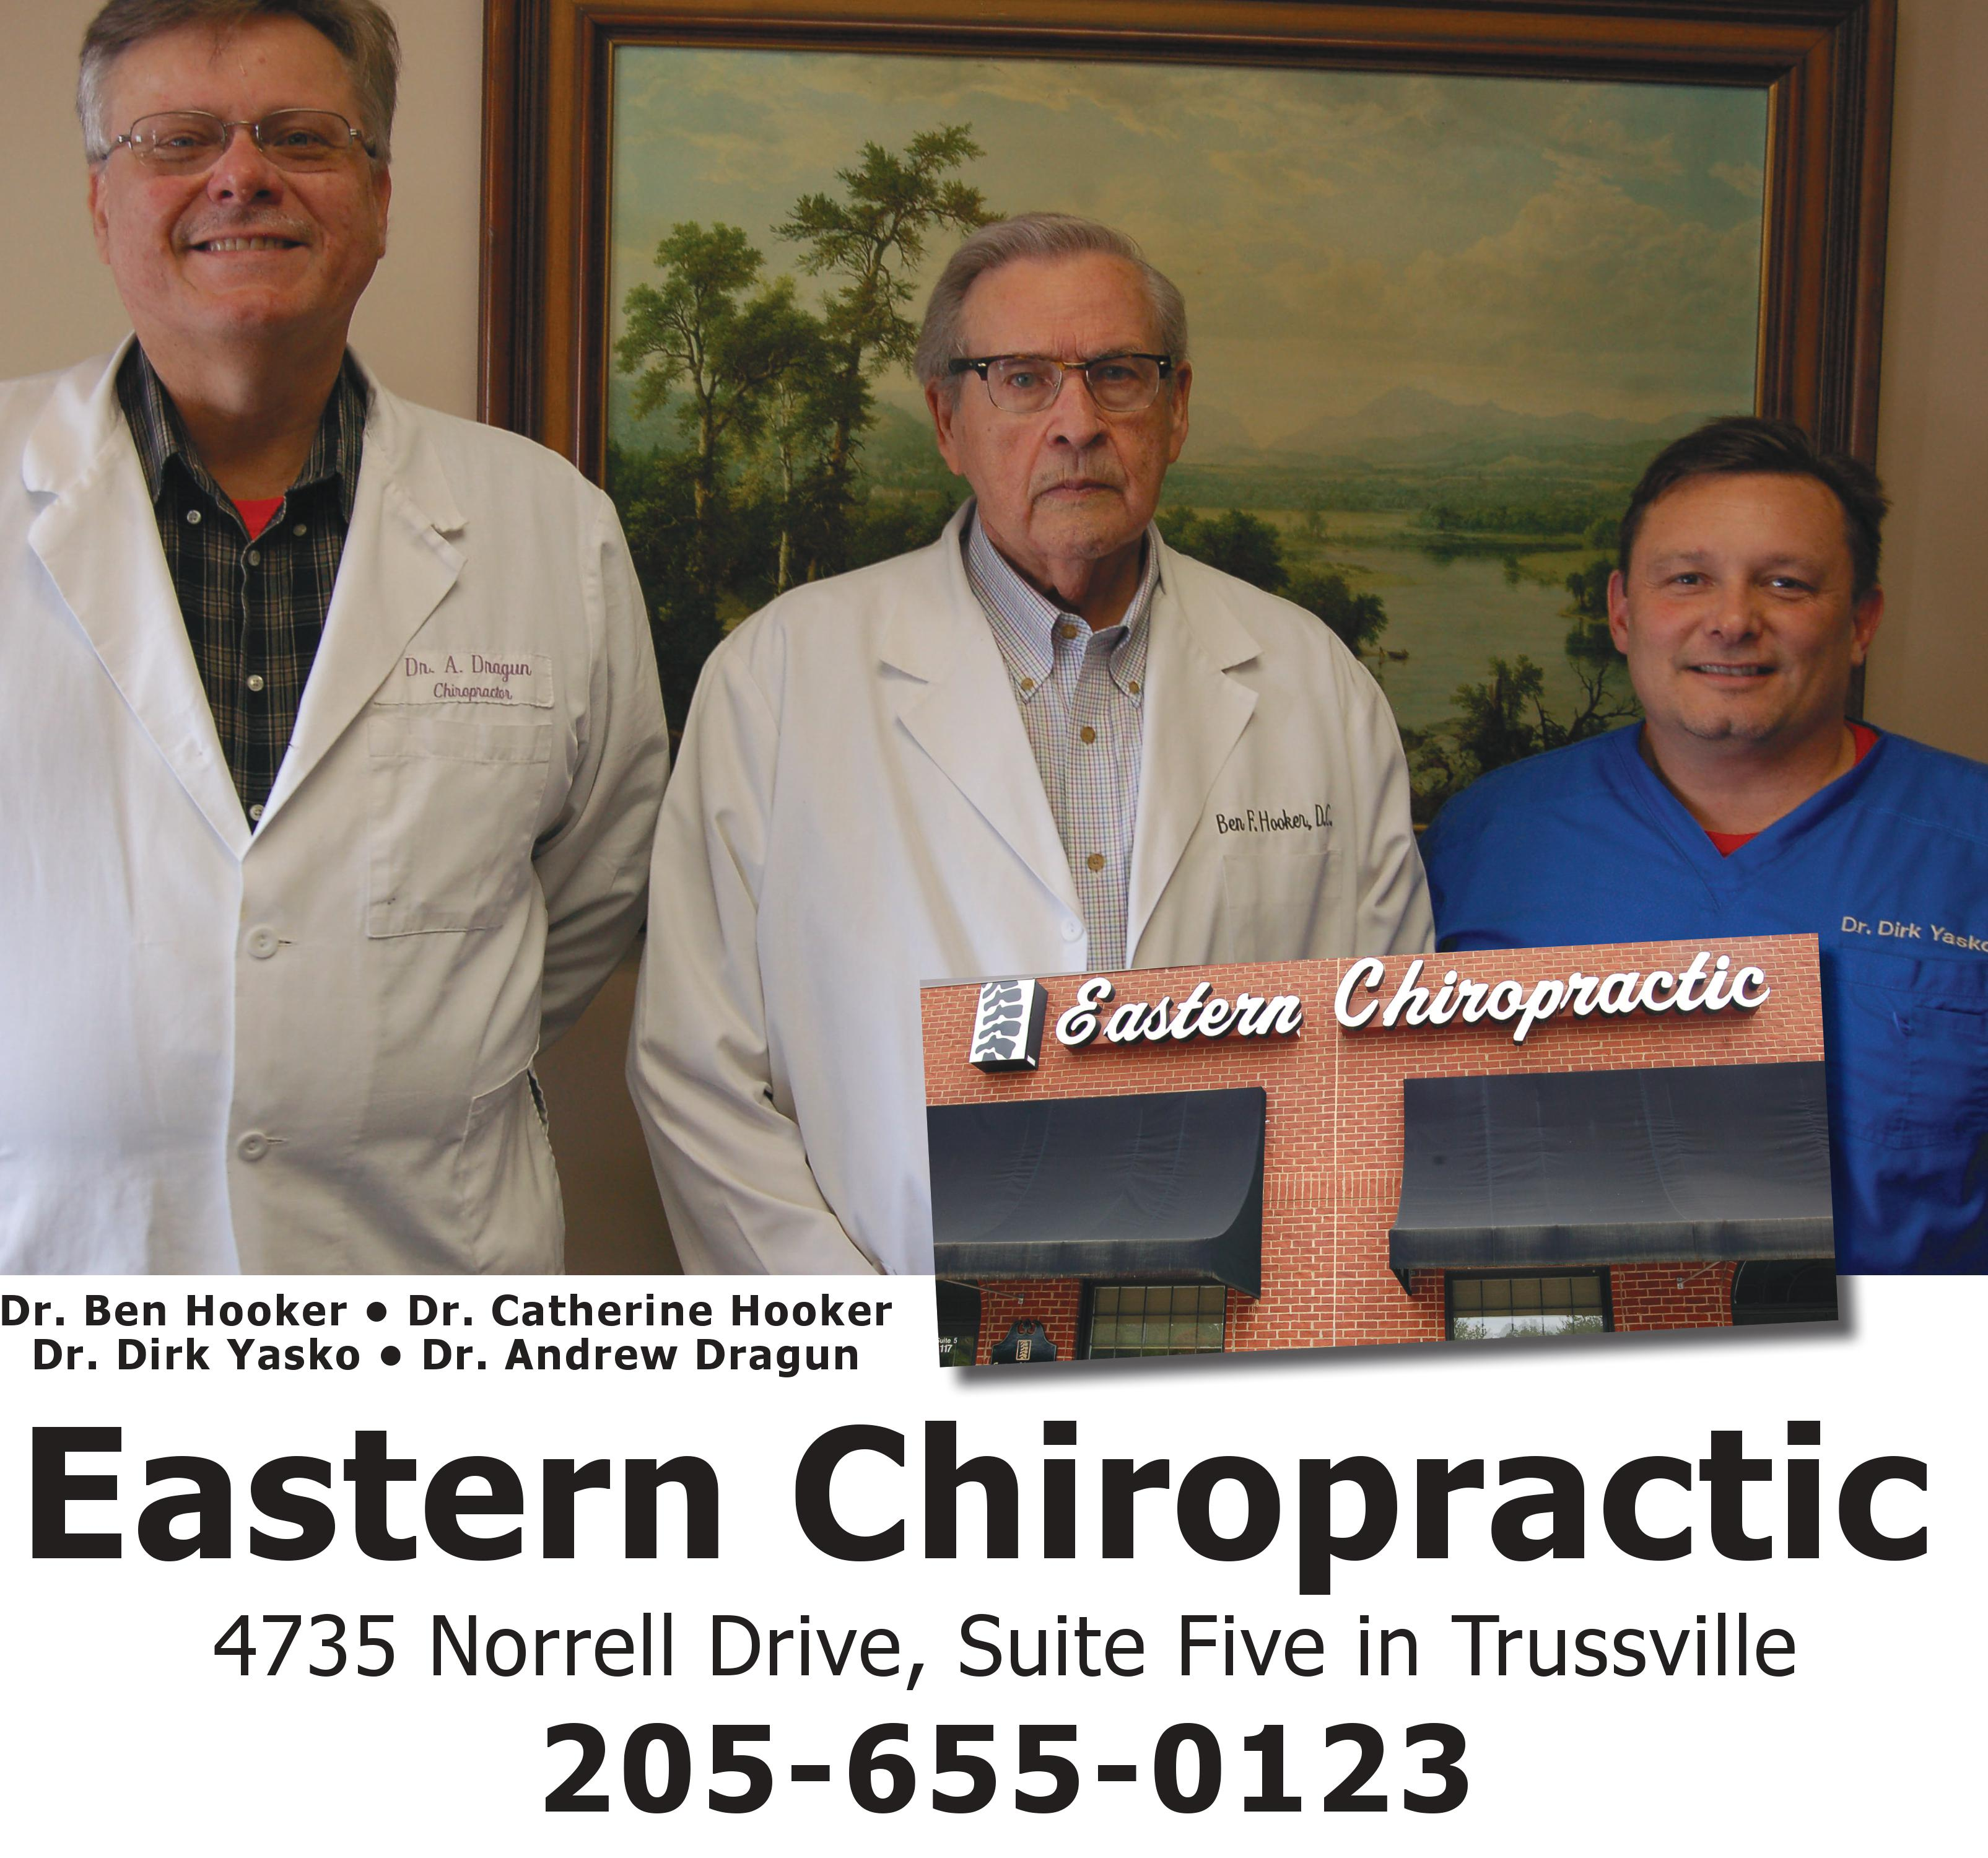 Eastern Chiropractic loves to help its patients